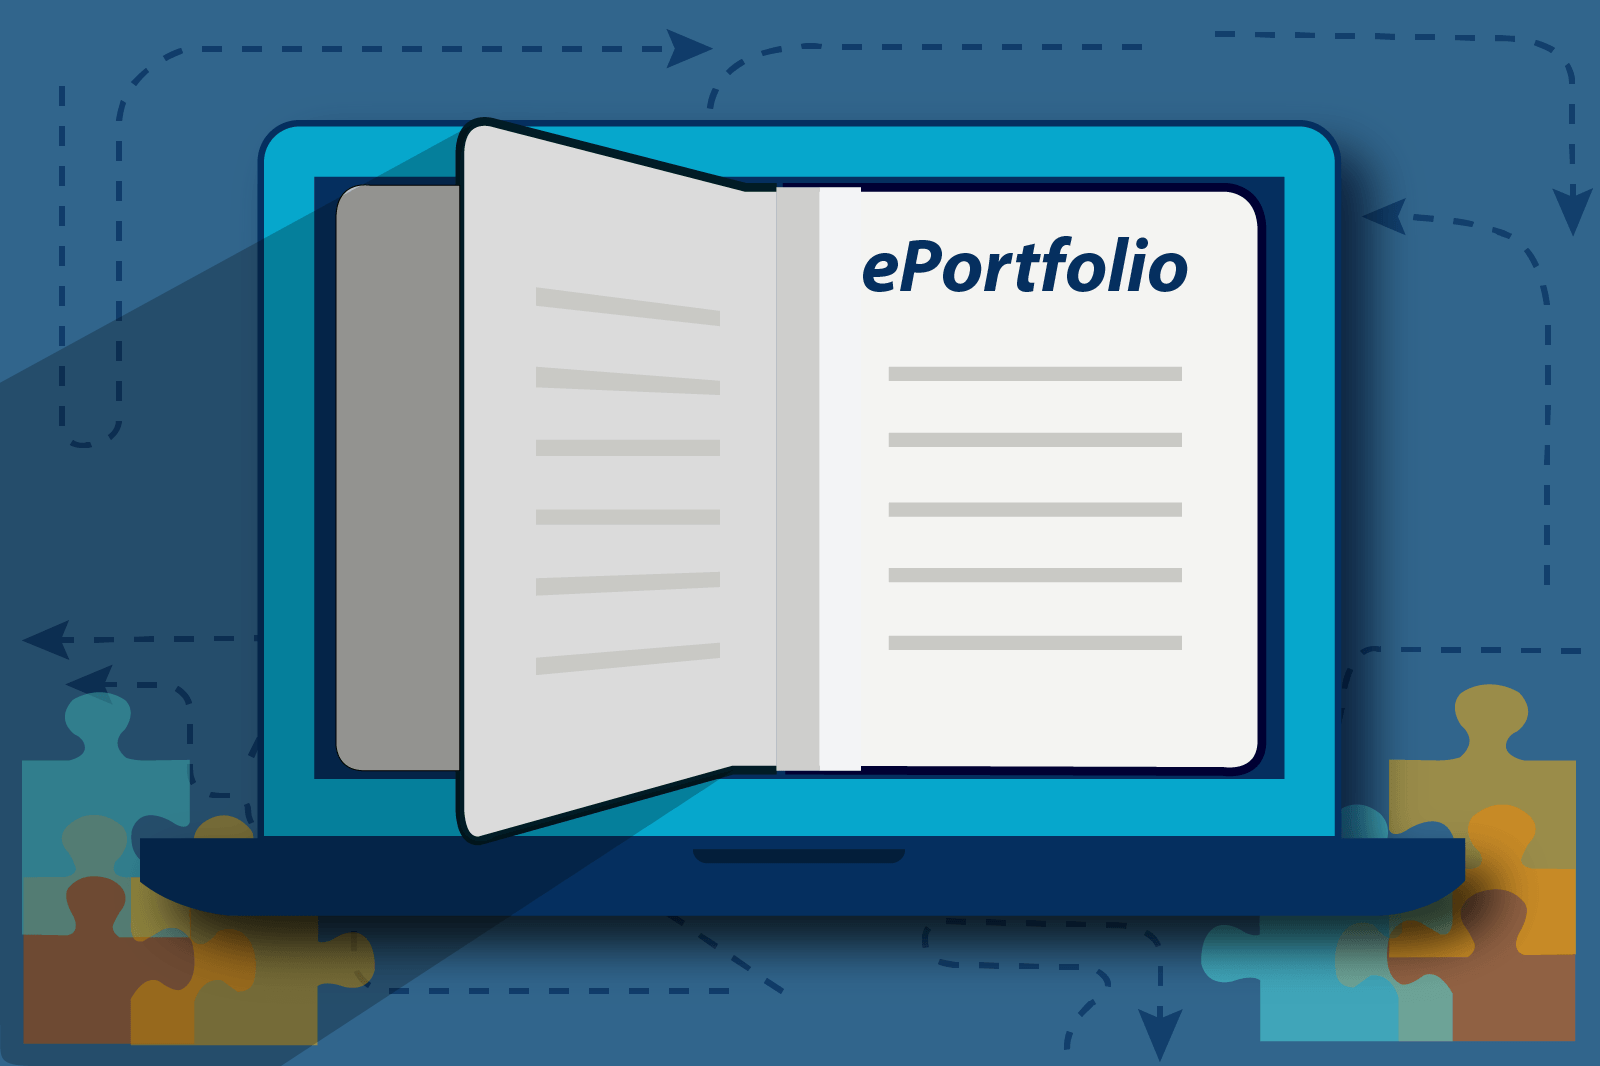 Foundations of University Learning and Teaching: ePortfolio assessment